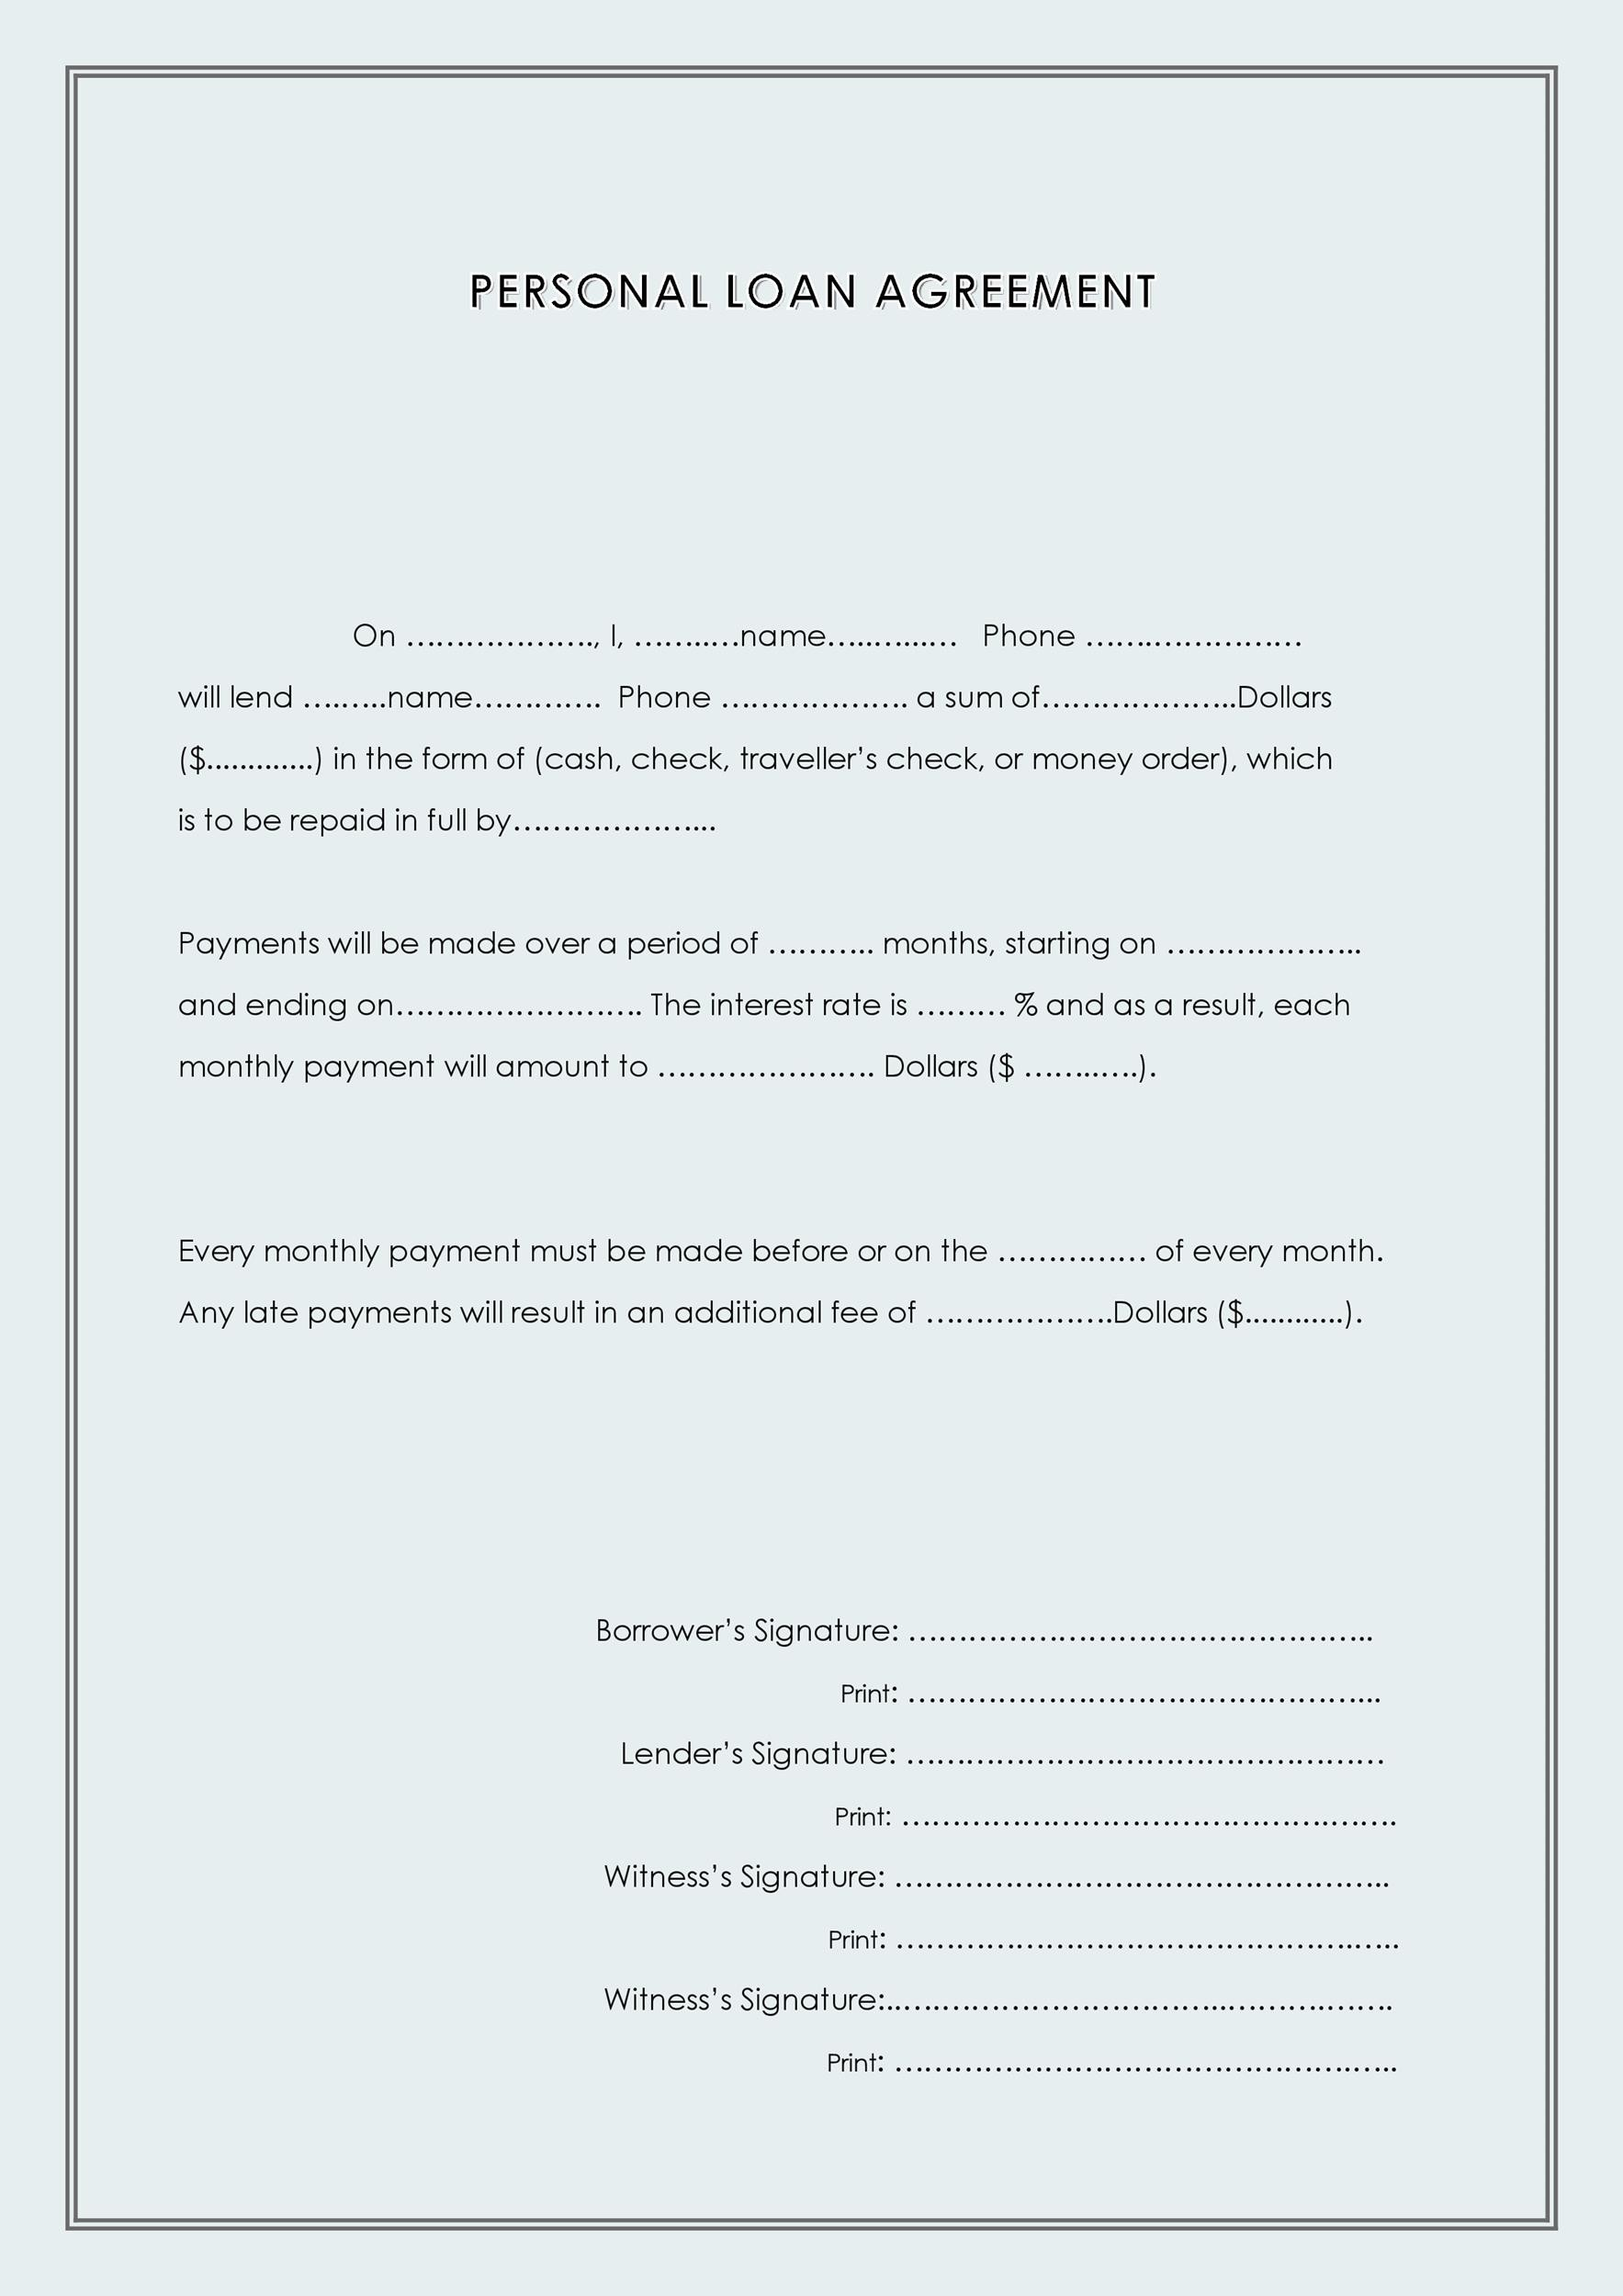 Printable Loan Agreement Template 36  Personal Loan Agreement Template Microsoft Word